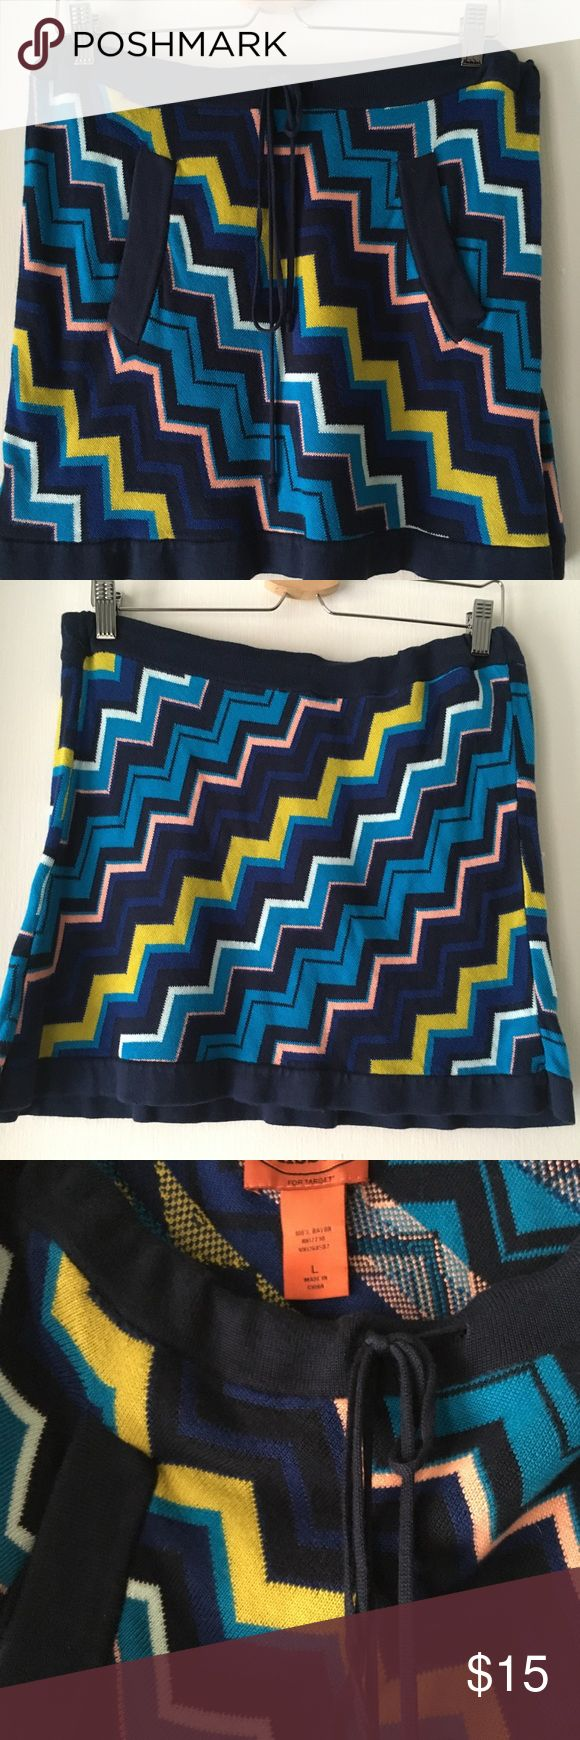 Missoni for Target skirt Missoni for Target• Juniors size Large• EUC• Make me an offer 😉 Missoni Skirts Mini